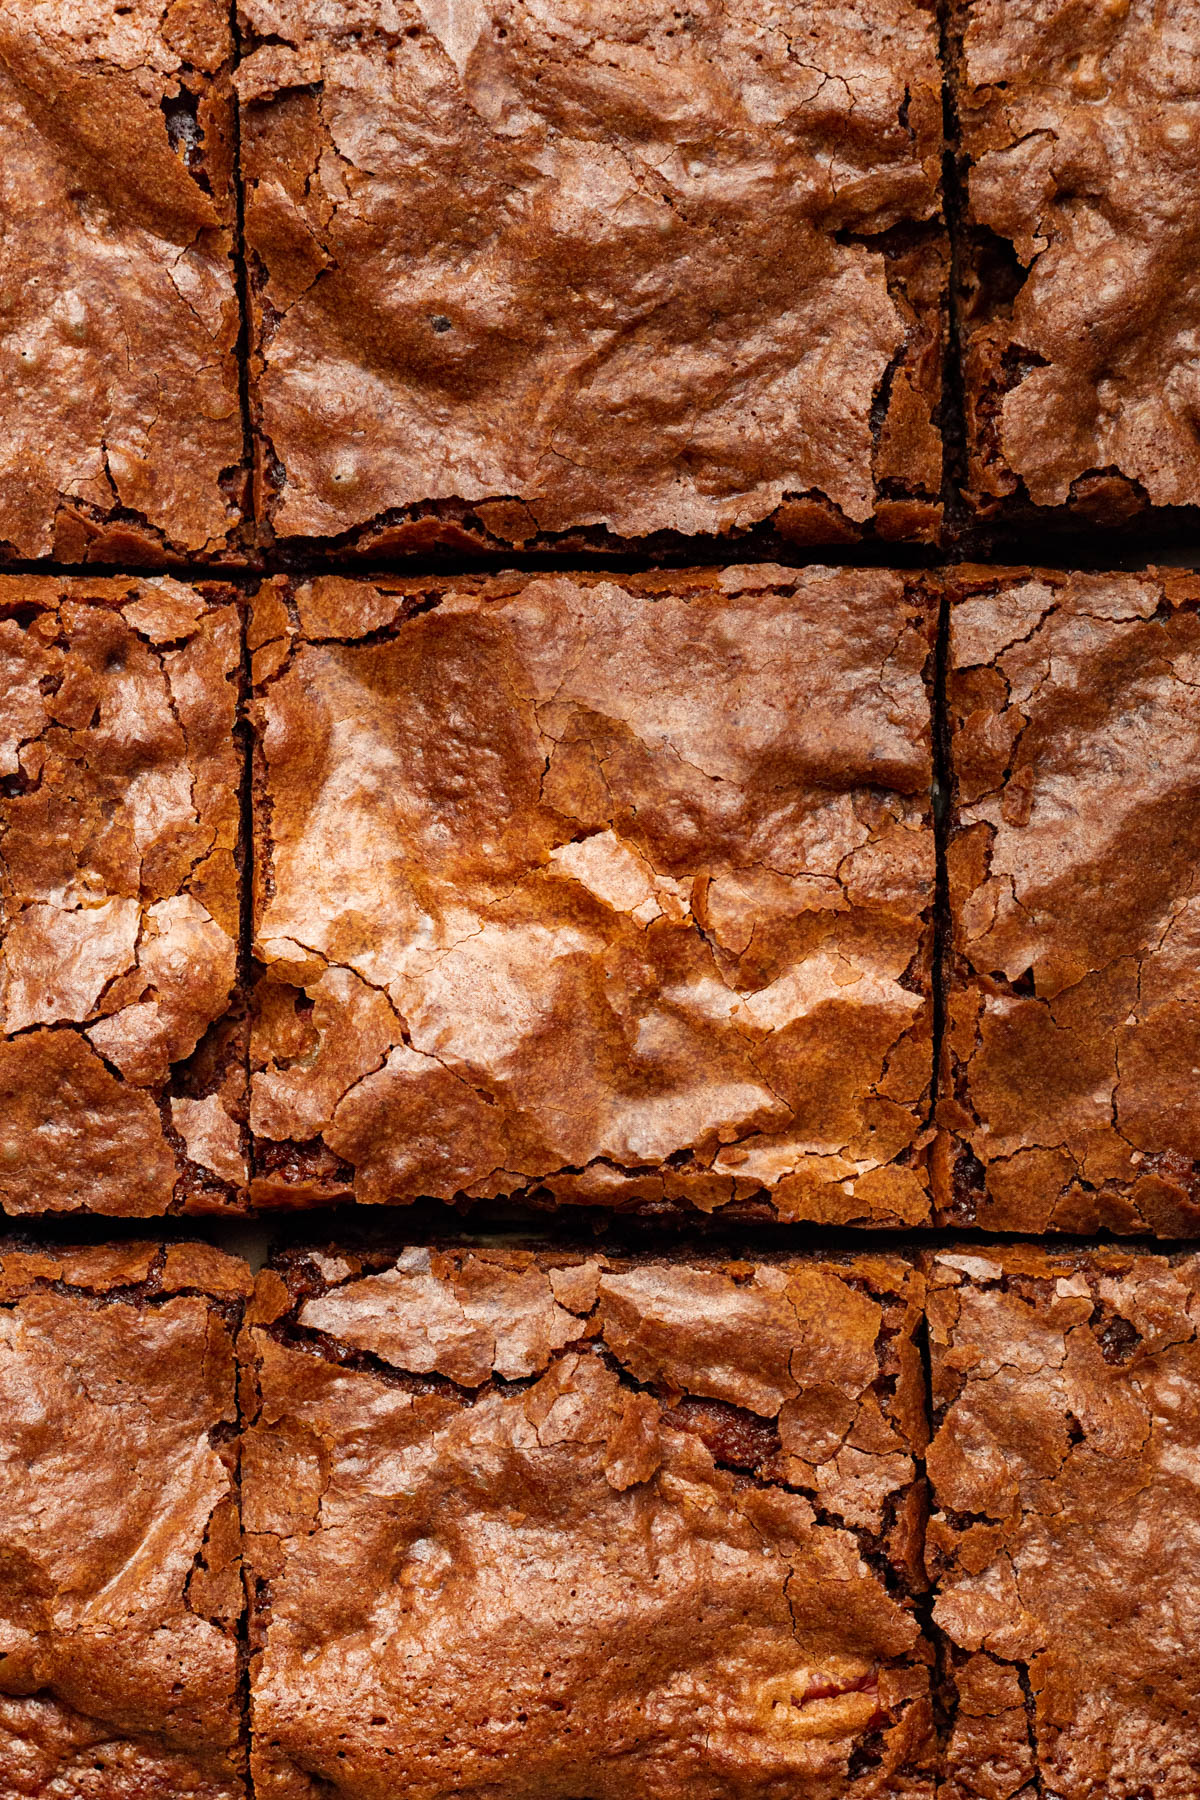 Sliced dairy-free brownies with crackly tops.